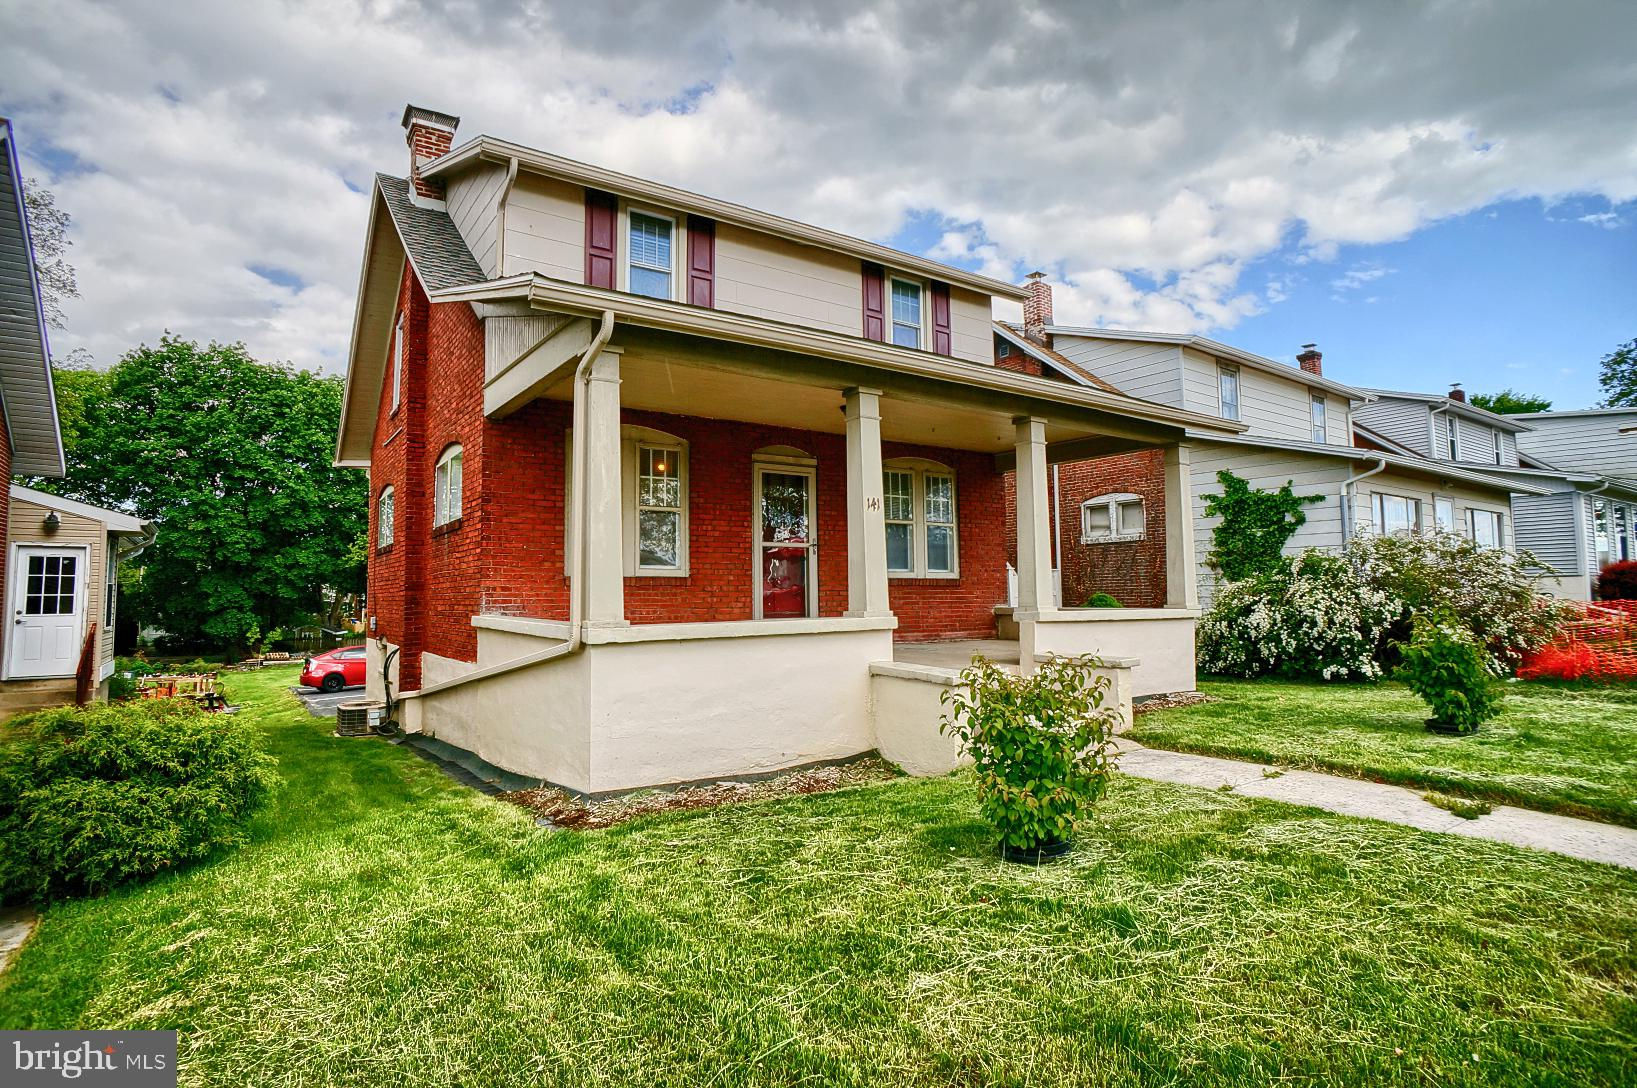 141 S 32ND Street, Camp Hill, PA 17011 now has a new price of $219,900!